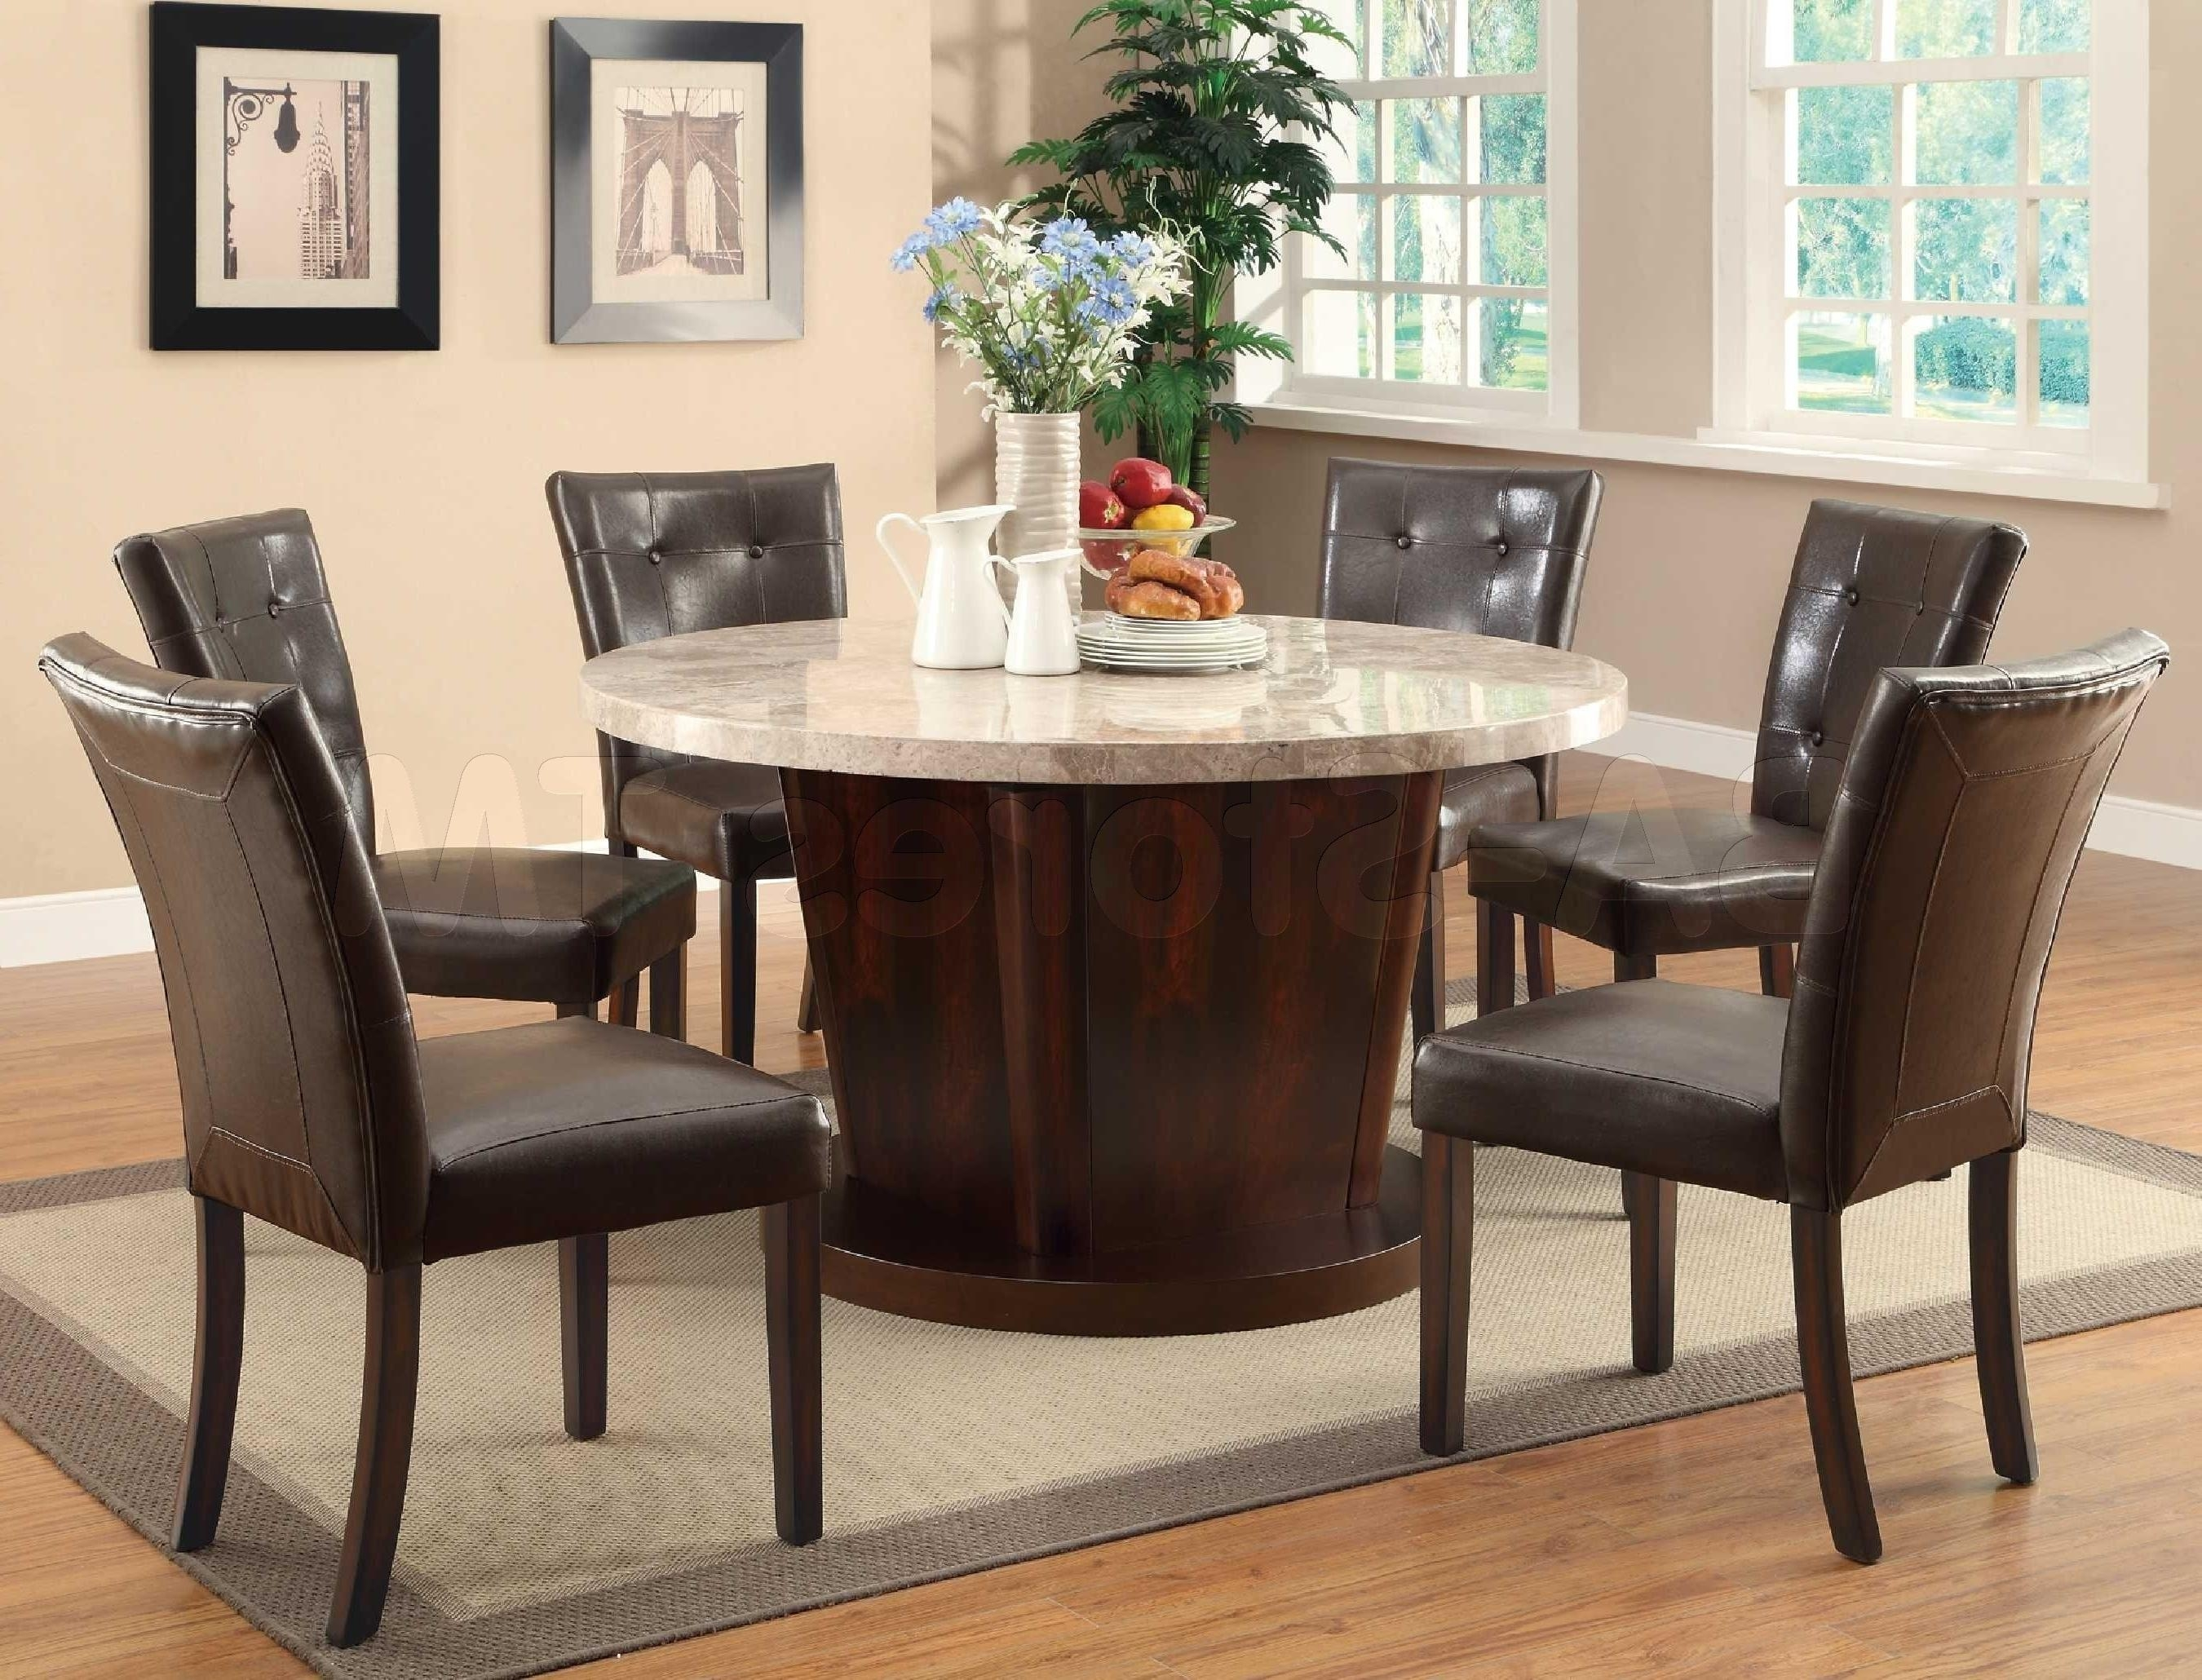 Amazing Folding Table Big Lots With Big Lots Round Folding Table With Big Lots Sofa Tables (Image 1 of 20)